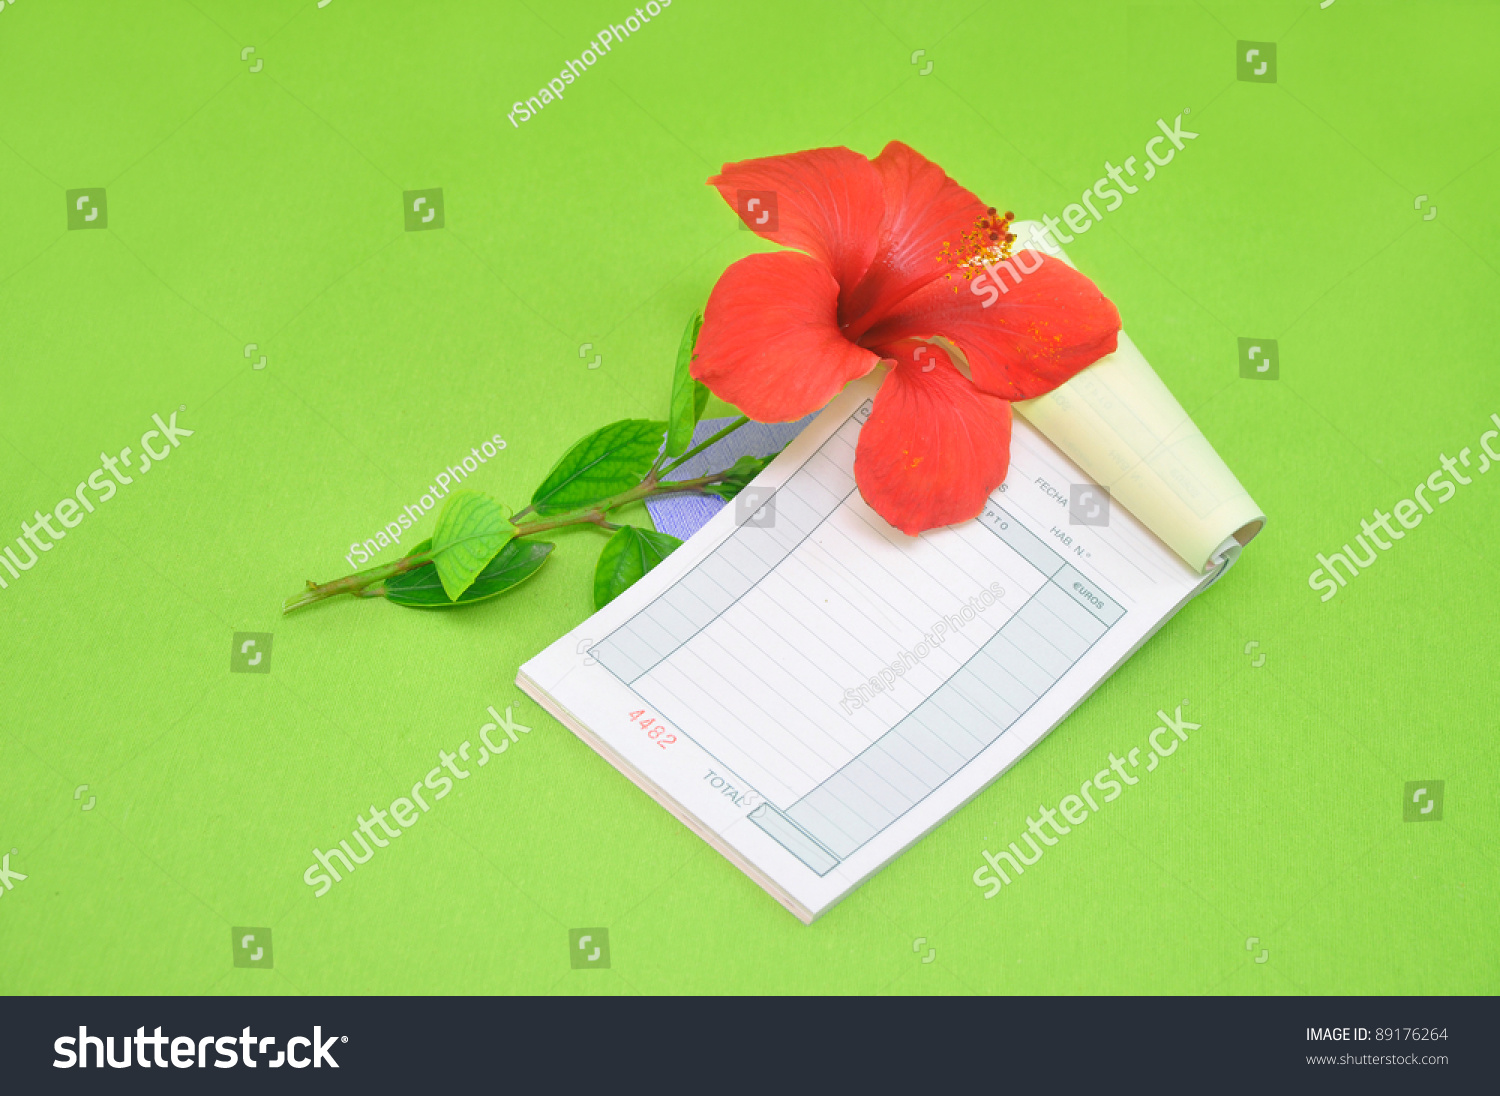 Hibiscus Flower With Blank Page Receipt Book Green Background Spanish T